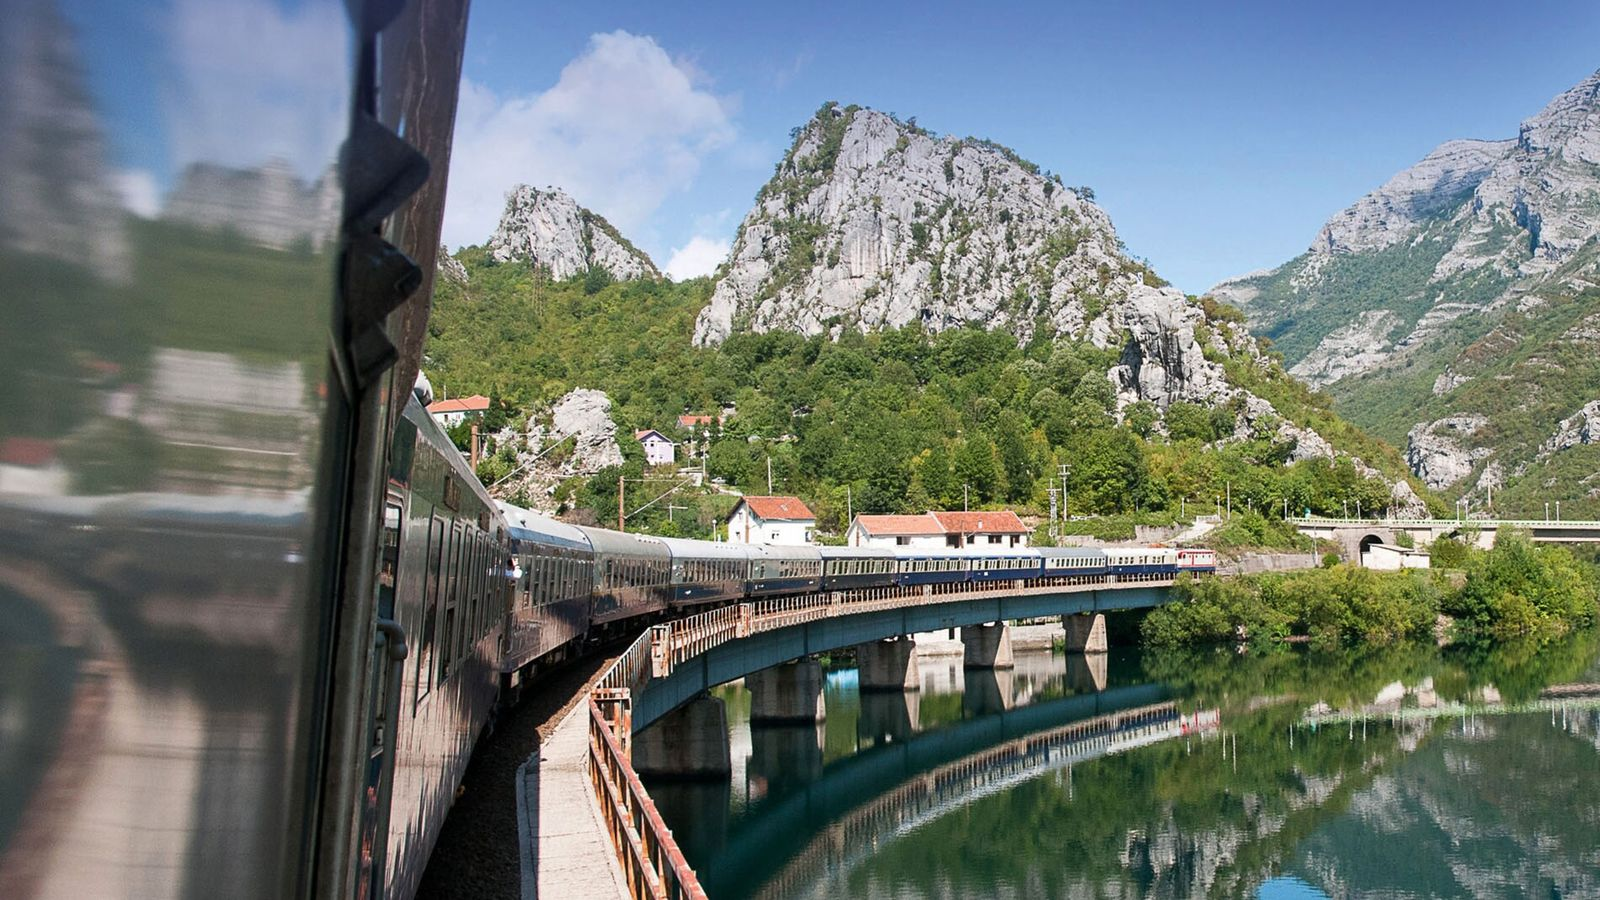 The Golden Eagle Danube Express traces its way through the Bosnian countryside.